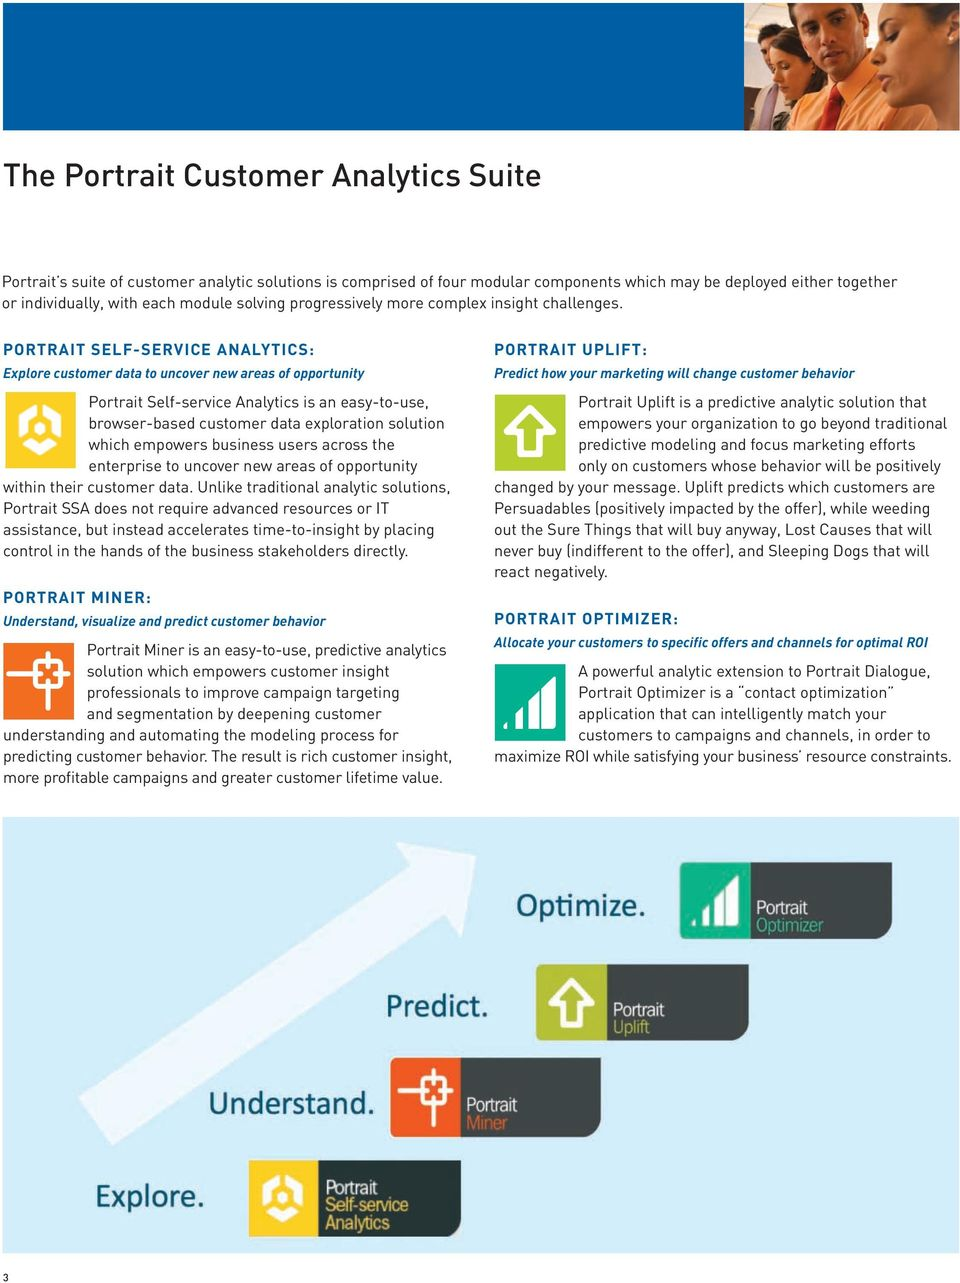 PORTRAIT SELF-SERVICE ANALYTICS: Explore customer data to uncover new areas of opportunity Portrait Self-service Analytics is an easy-to-use, browser-based customer data exploration solution which